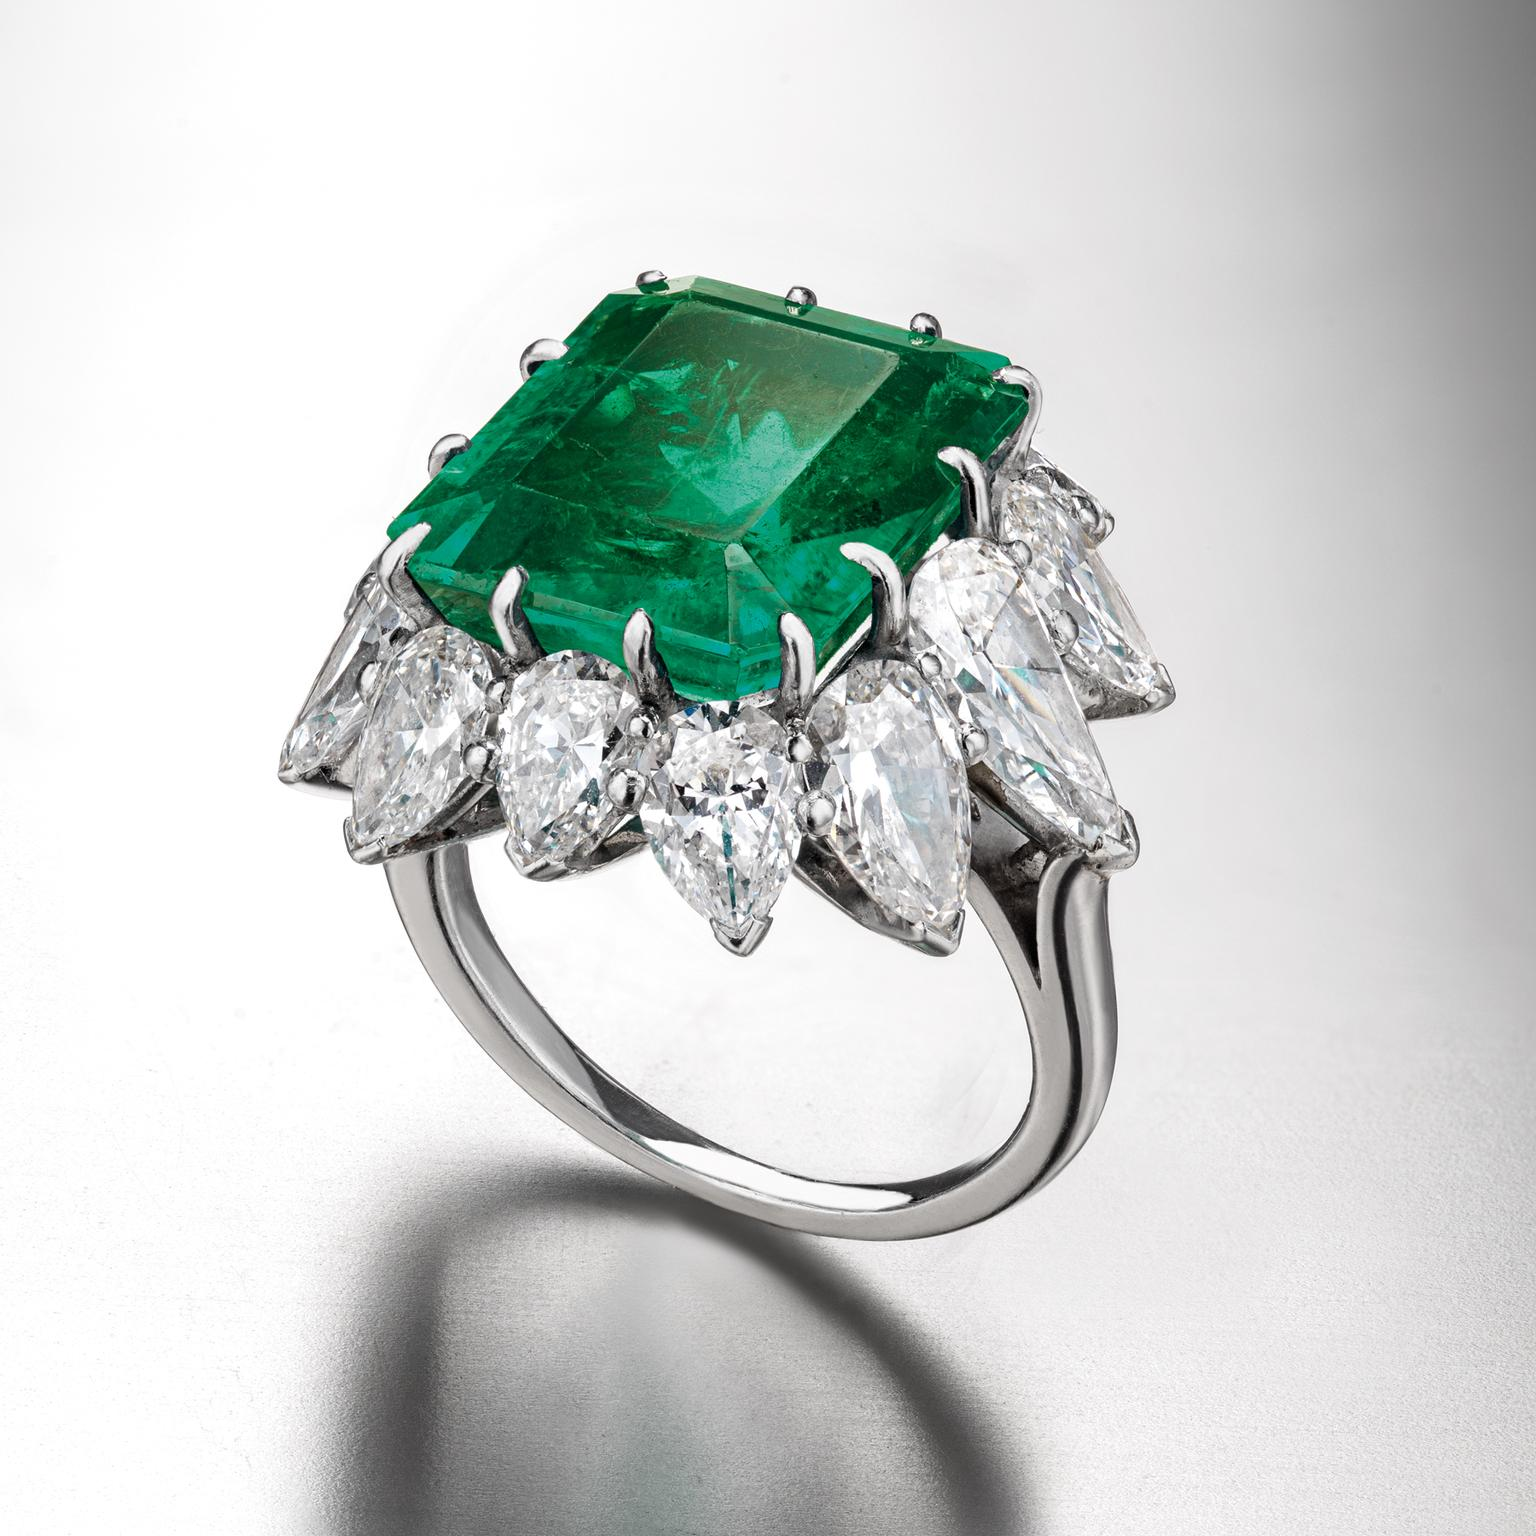 Elizabeth Taylor Bulgari emerald diamond ring